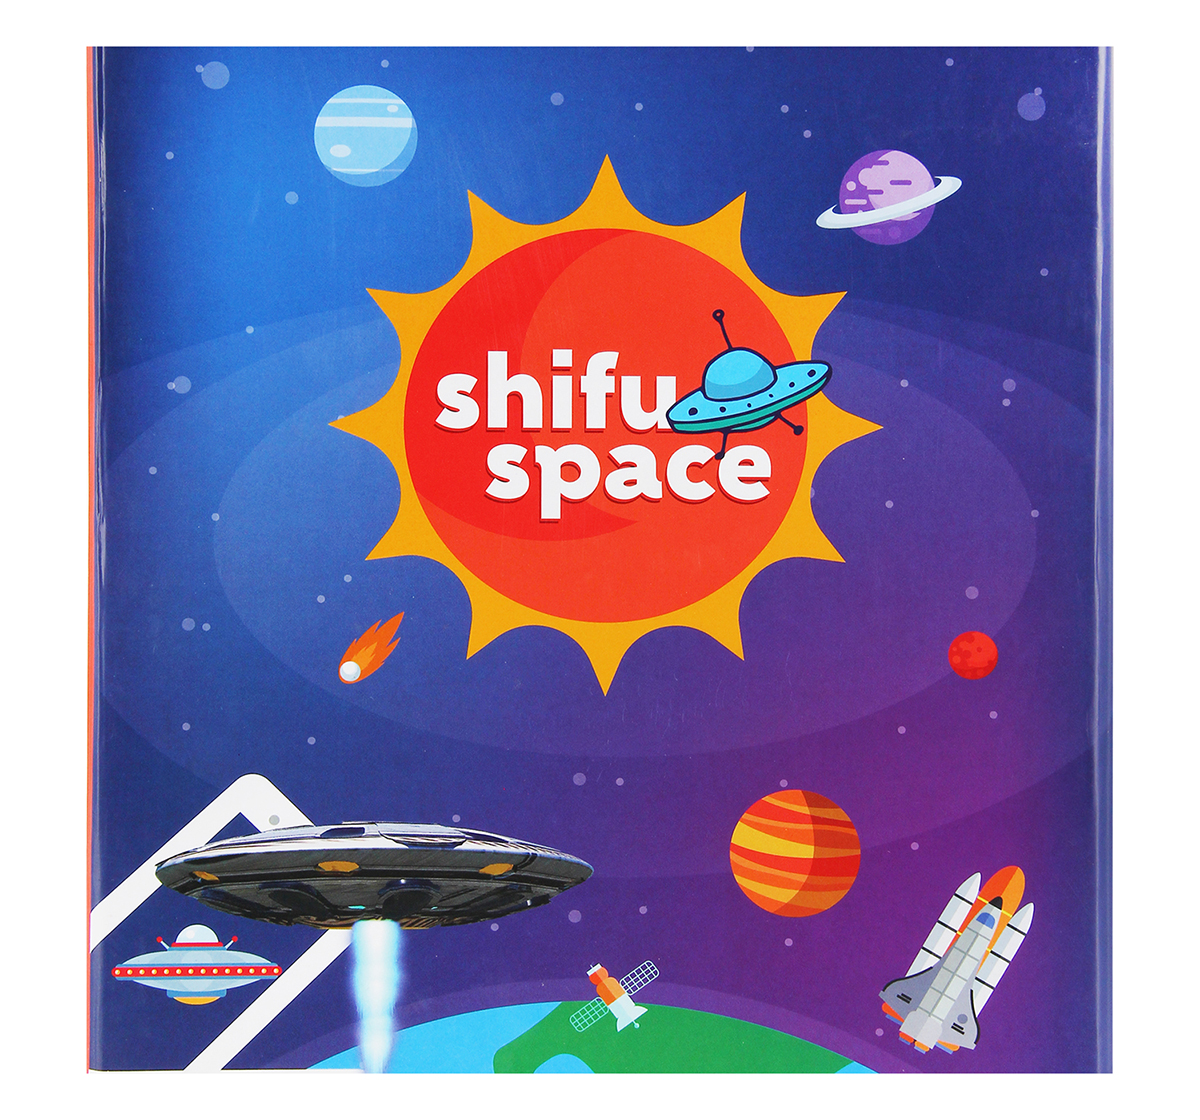 Playshifu | Playshifu iOS And Android Augmented Reality Space Educational Game, Black Science Kits for Kids age 5Y+